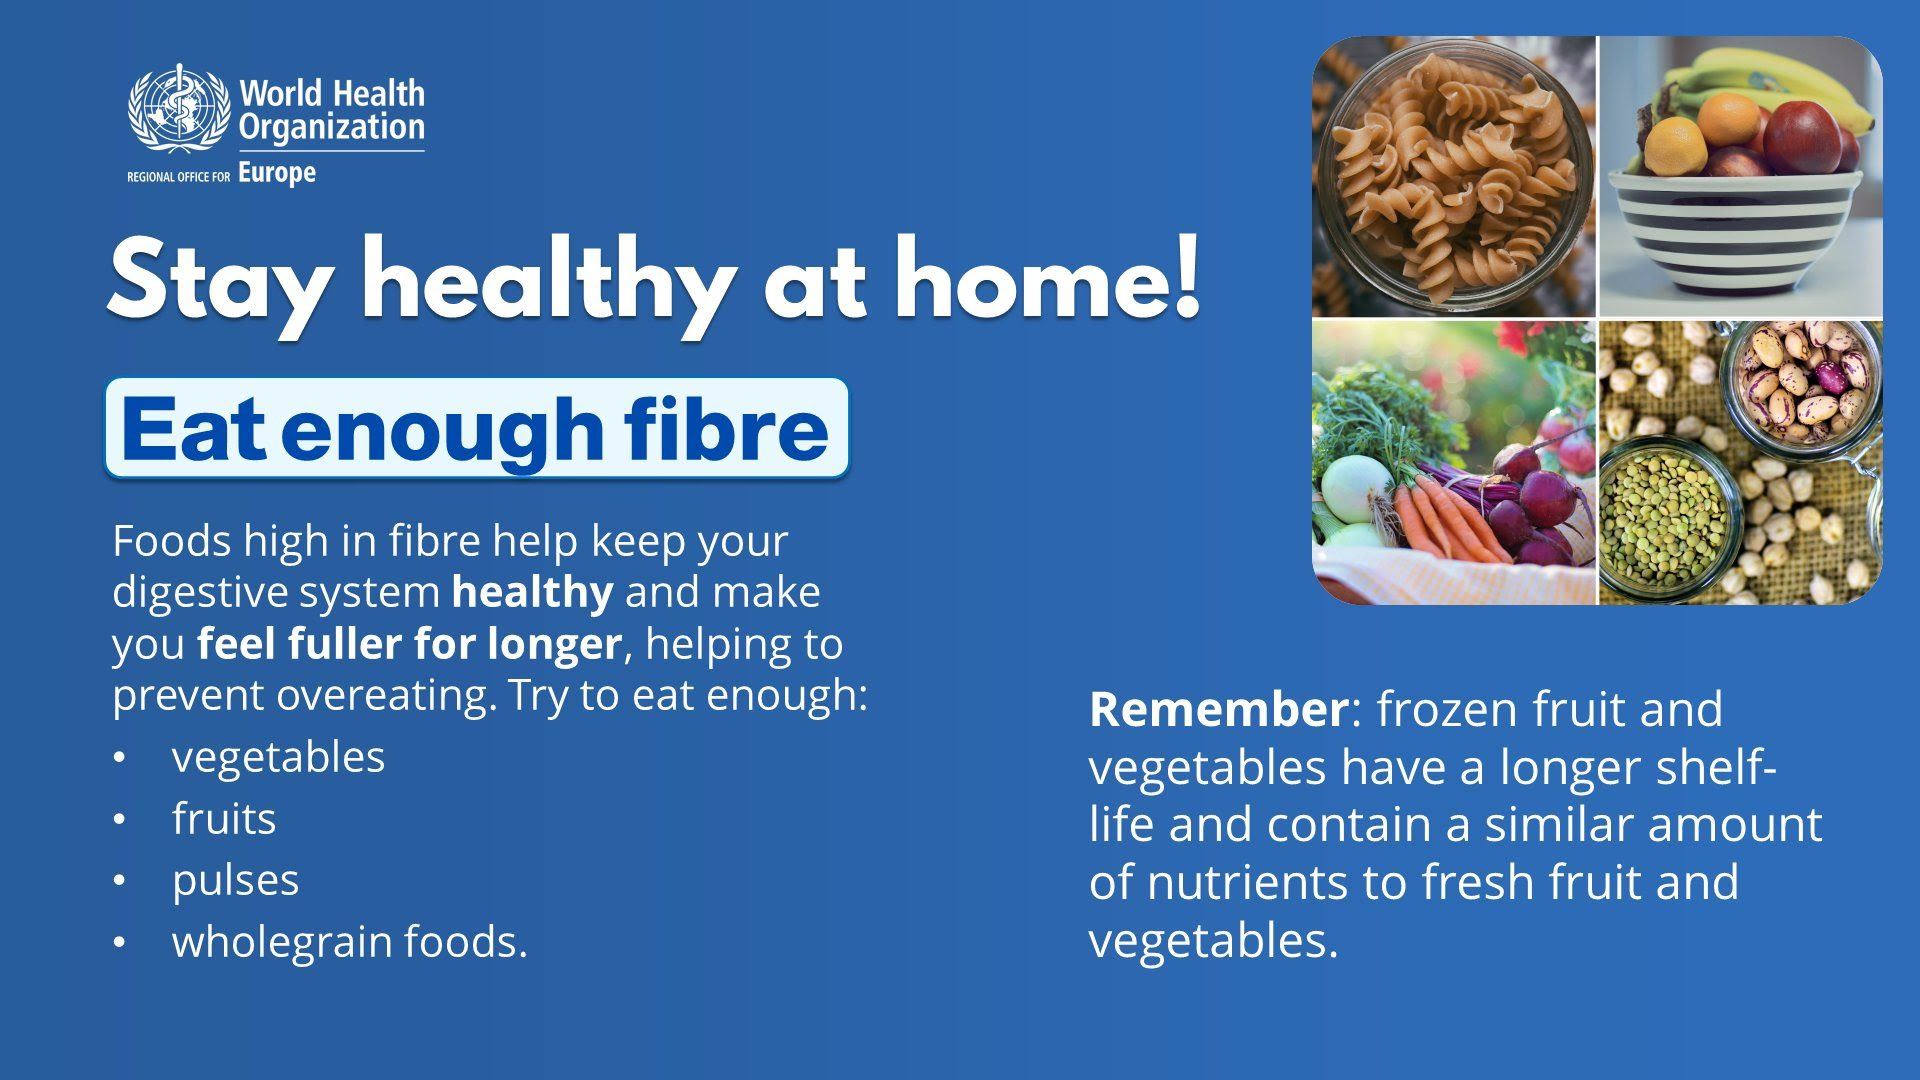 World Health Organization Western Pacific On Twitter Eat Plenty Of Fibre Foods That Are High In Fibre Keep Your Digestive System Healthy And Make You Feel Fuller For Longer Remember Frozen